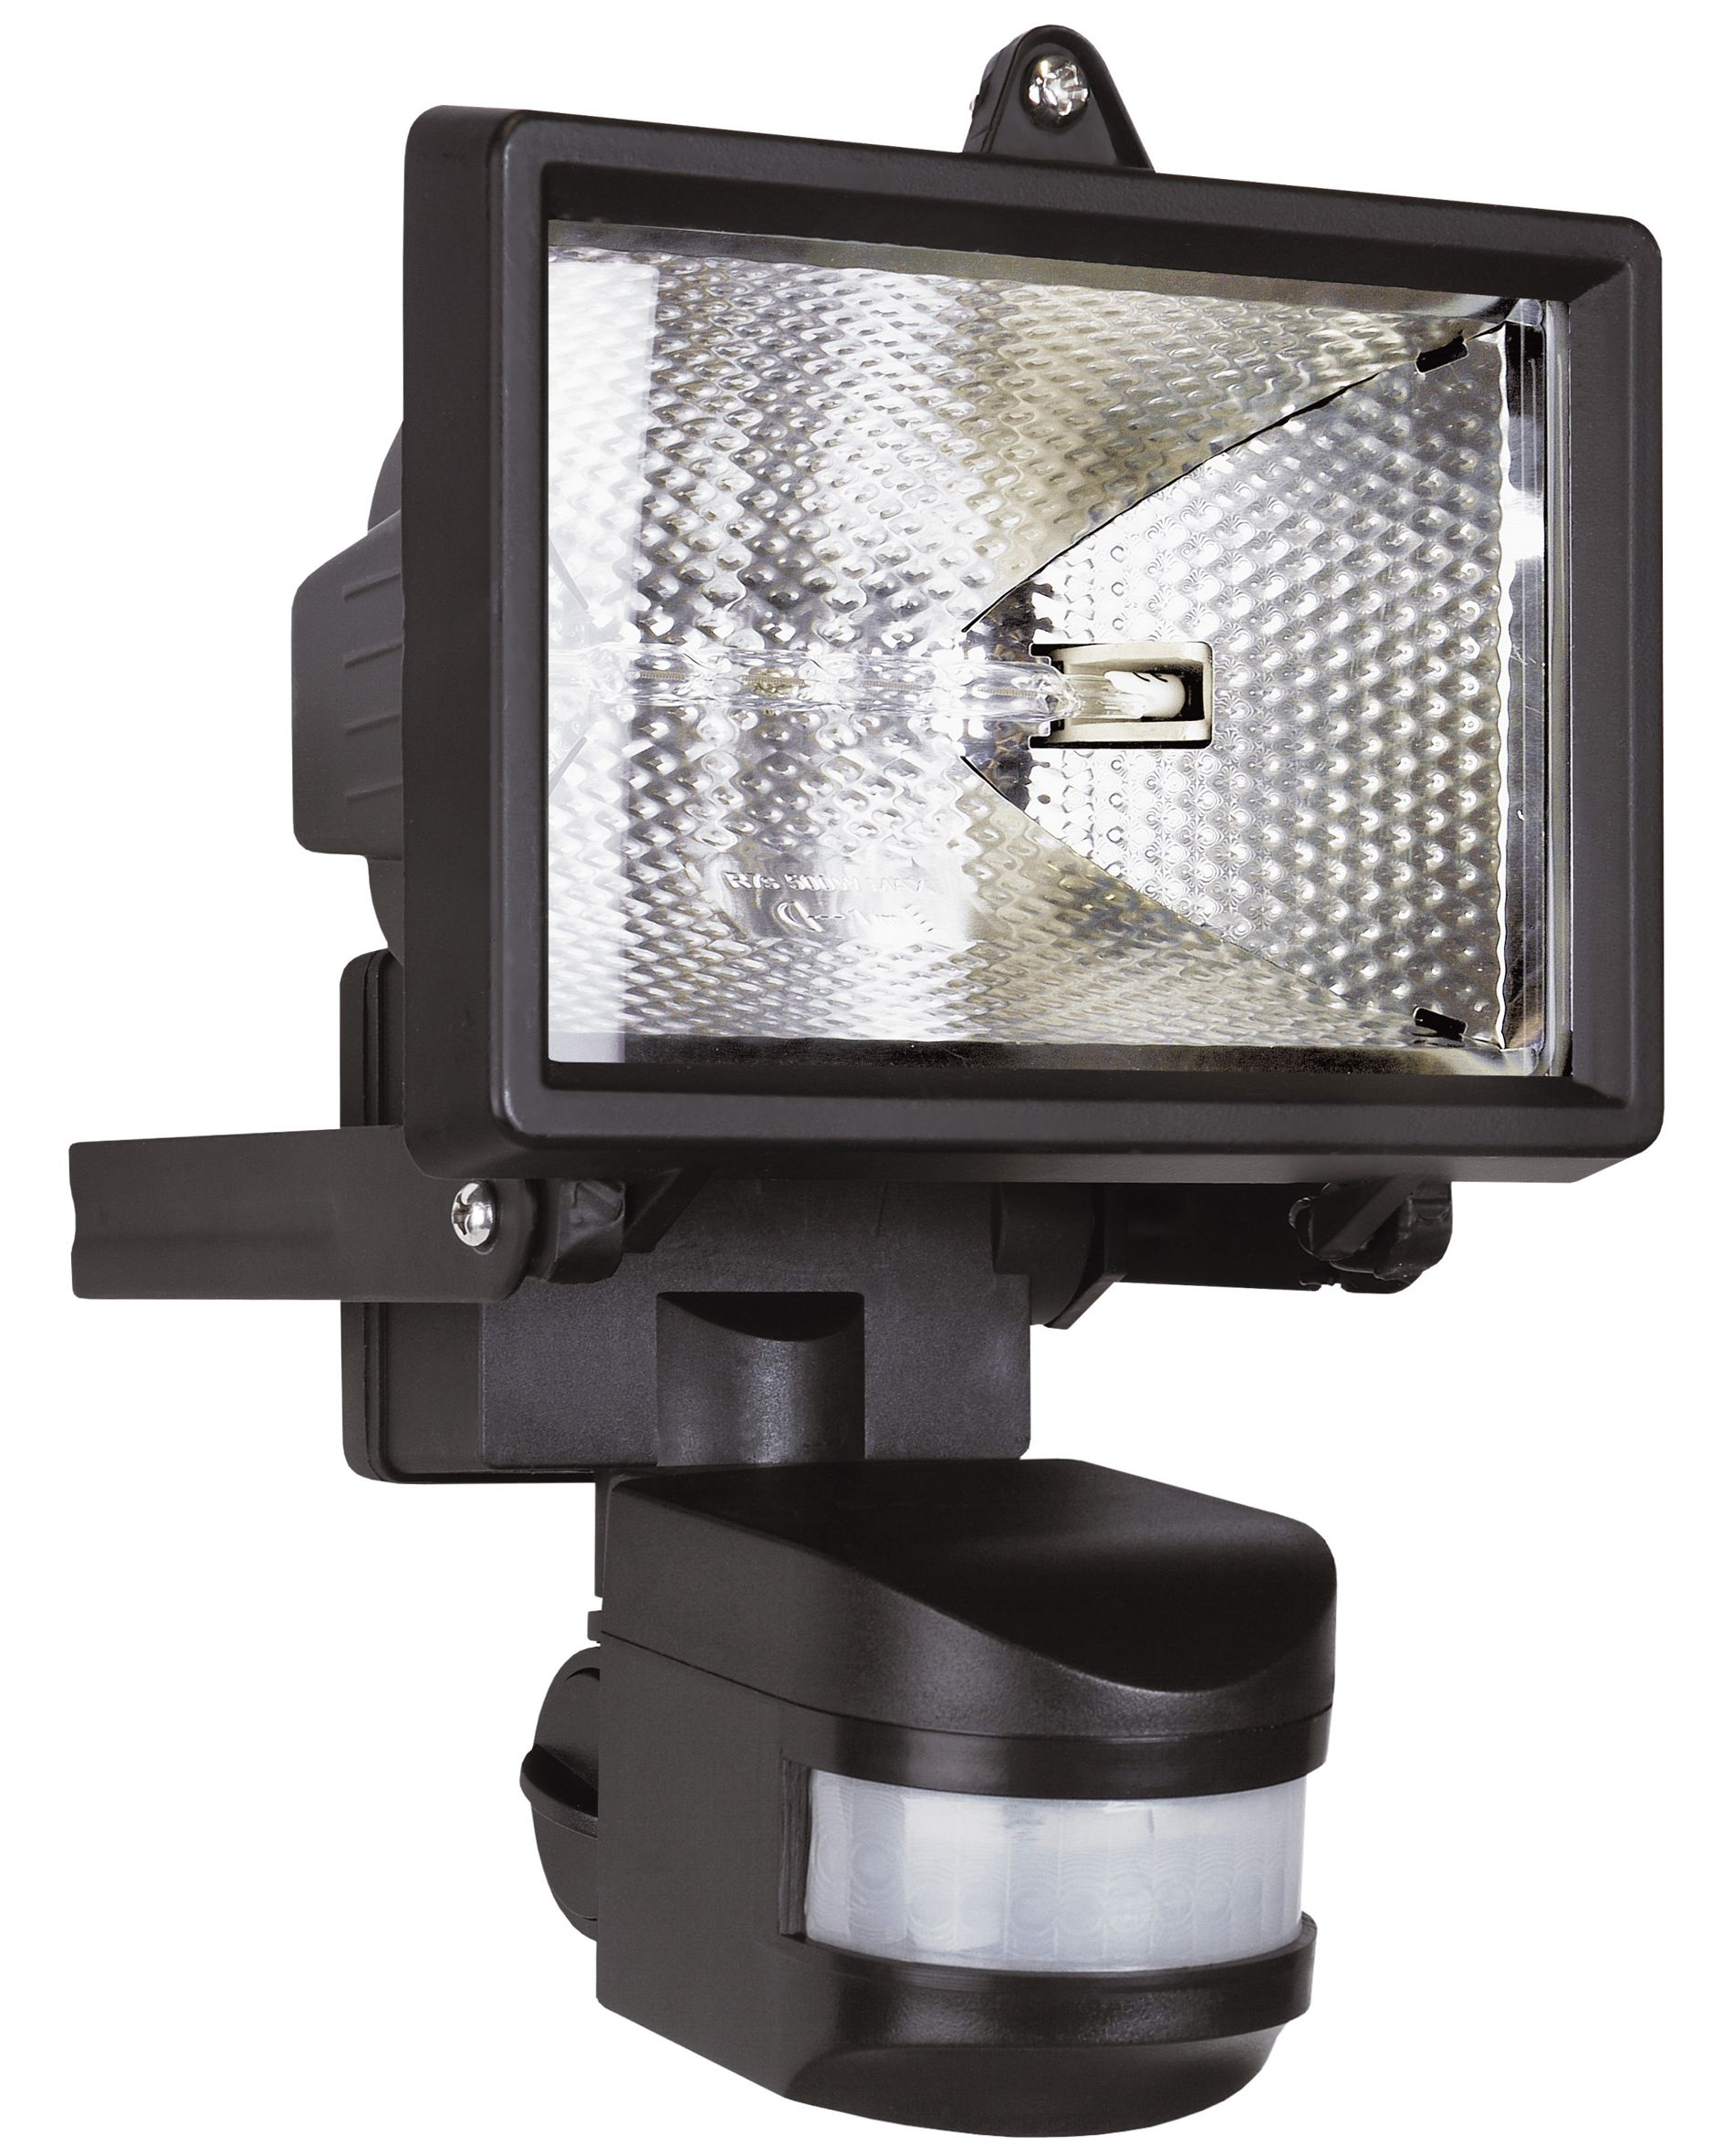 Outdoor Security Lights B Q: Elro Black 120W Mains Powered External Pir Security Light